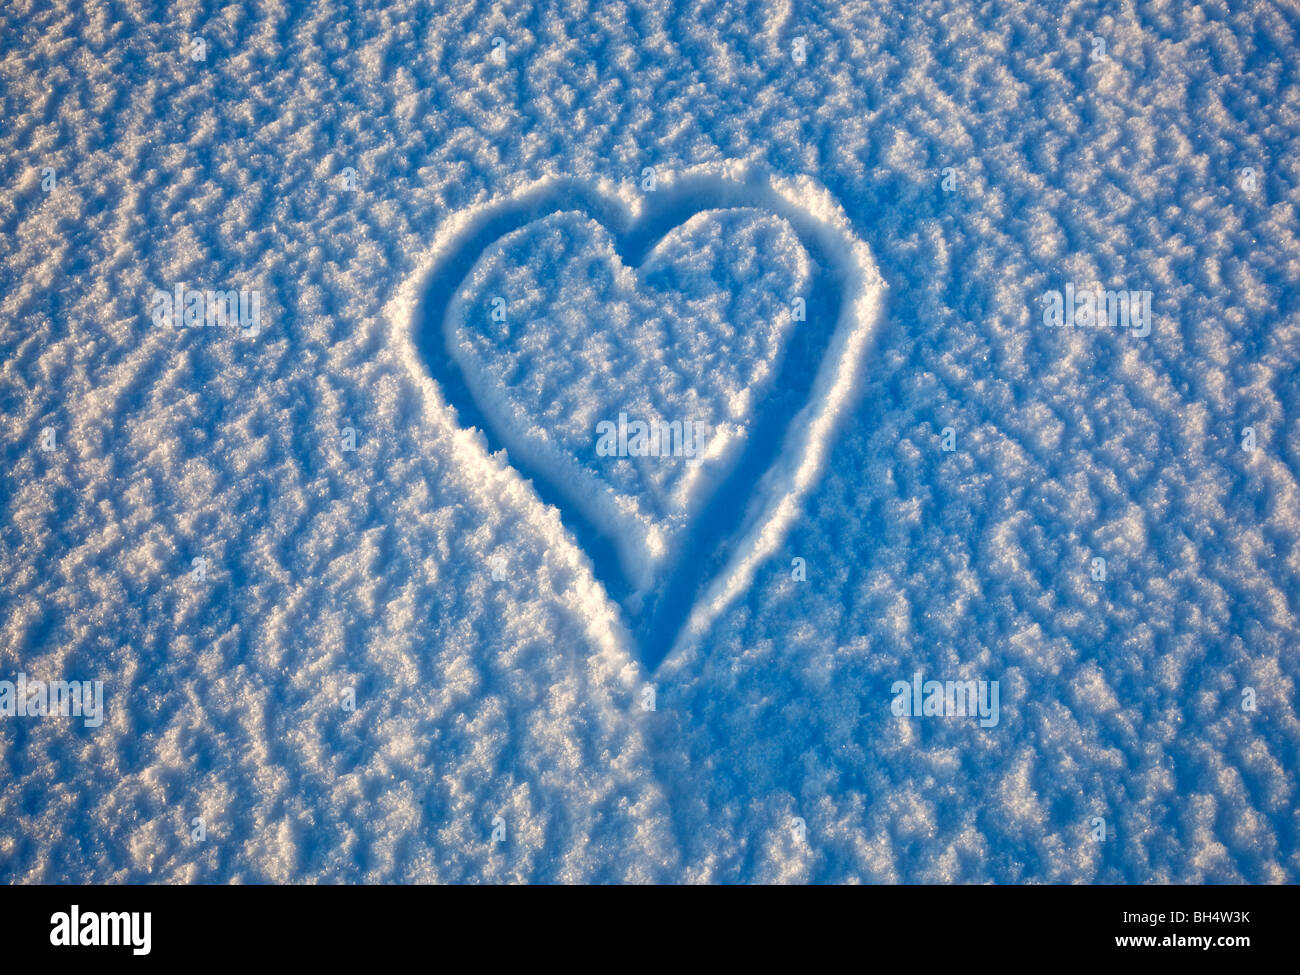 a love heart drawn in the snow - Stock Image